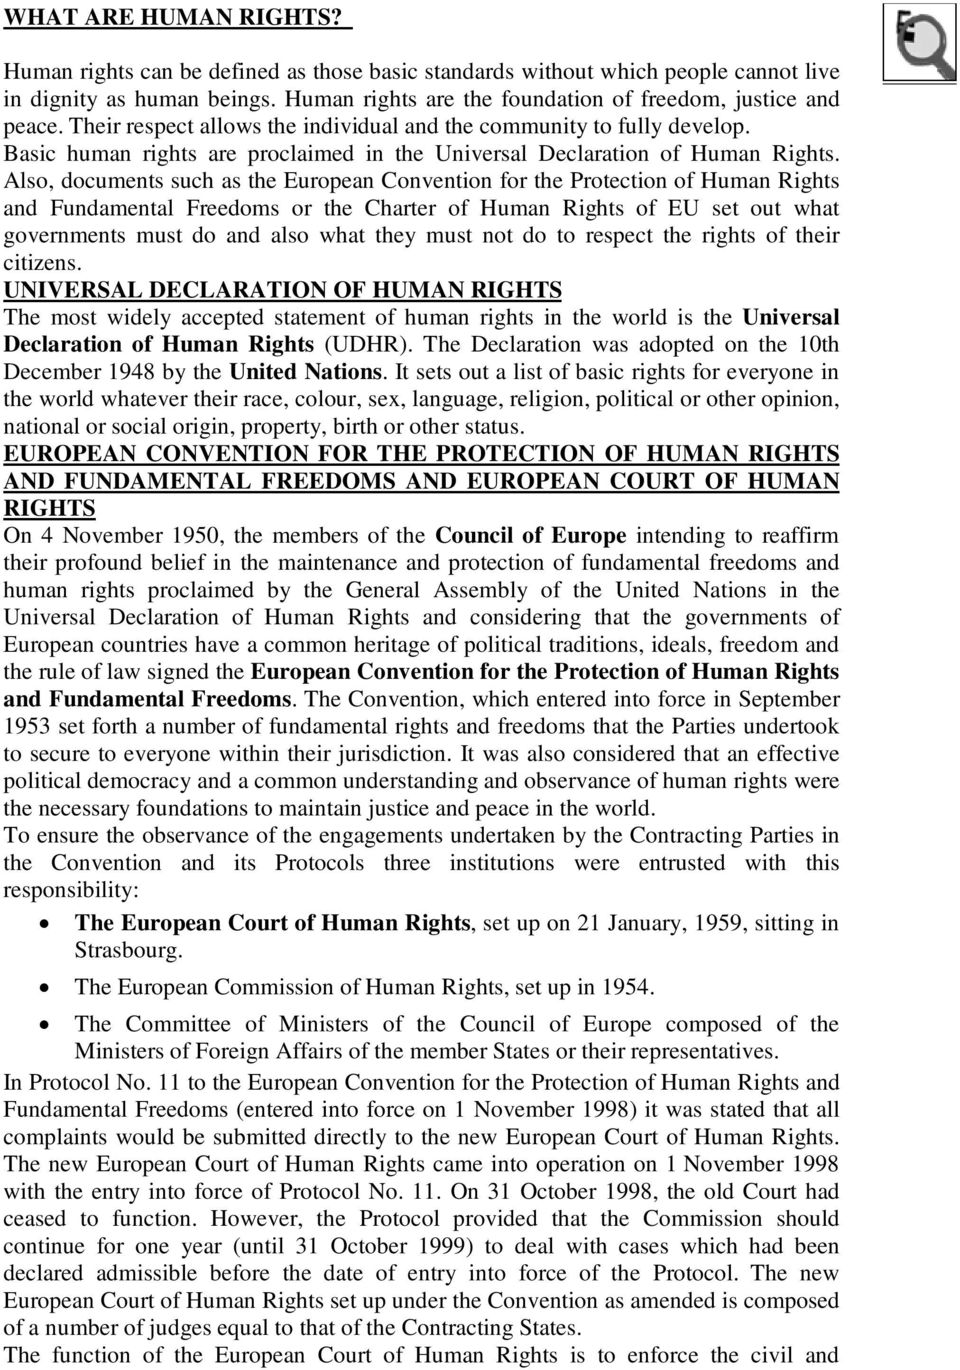 Also, documents such as the European Convention for the Protection of Human Rights and Fundamental Freedoms or the Charter of Human Rights of EU set out what governments must do and also what they